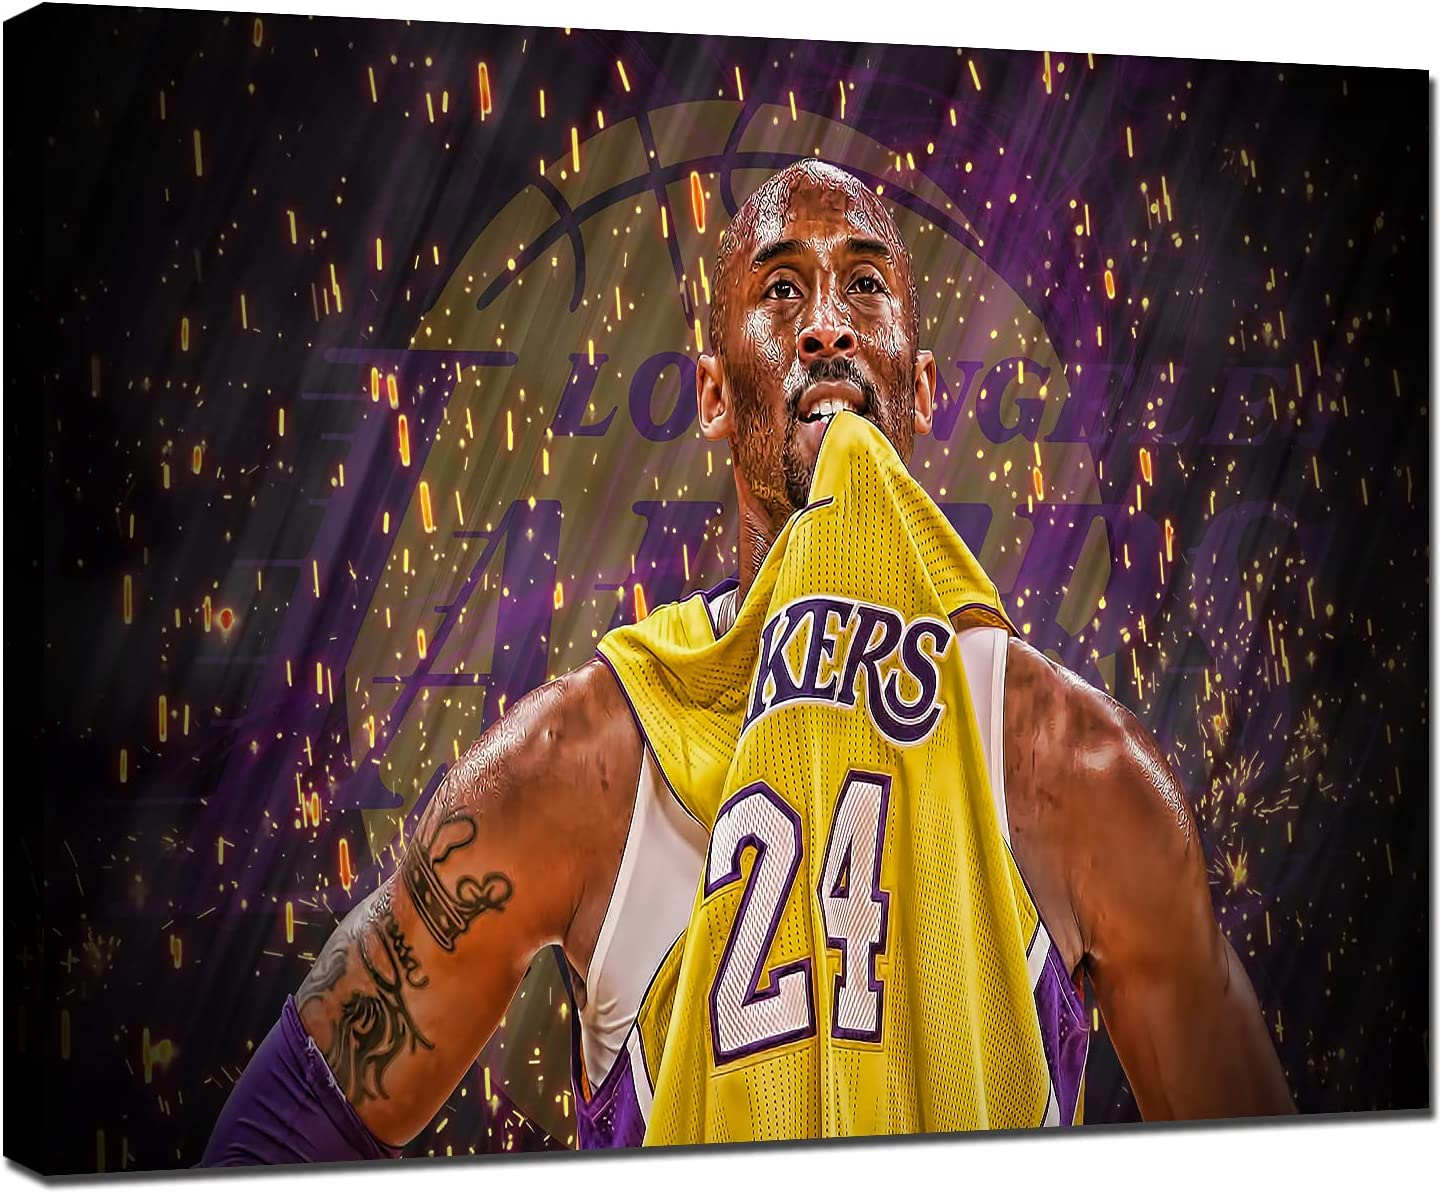 TWO J Canvas Wall Art Kobe LA Posters Bryant Lakers Legends Bask All items Rare free shipping